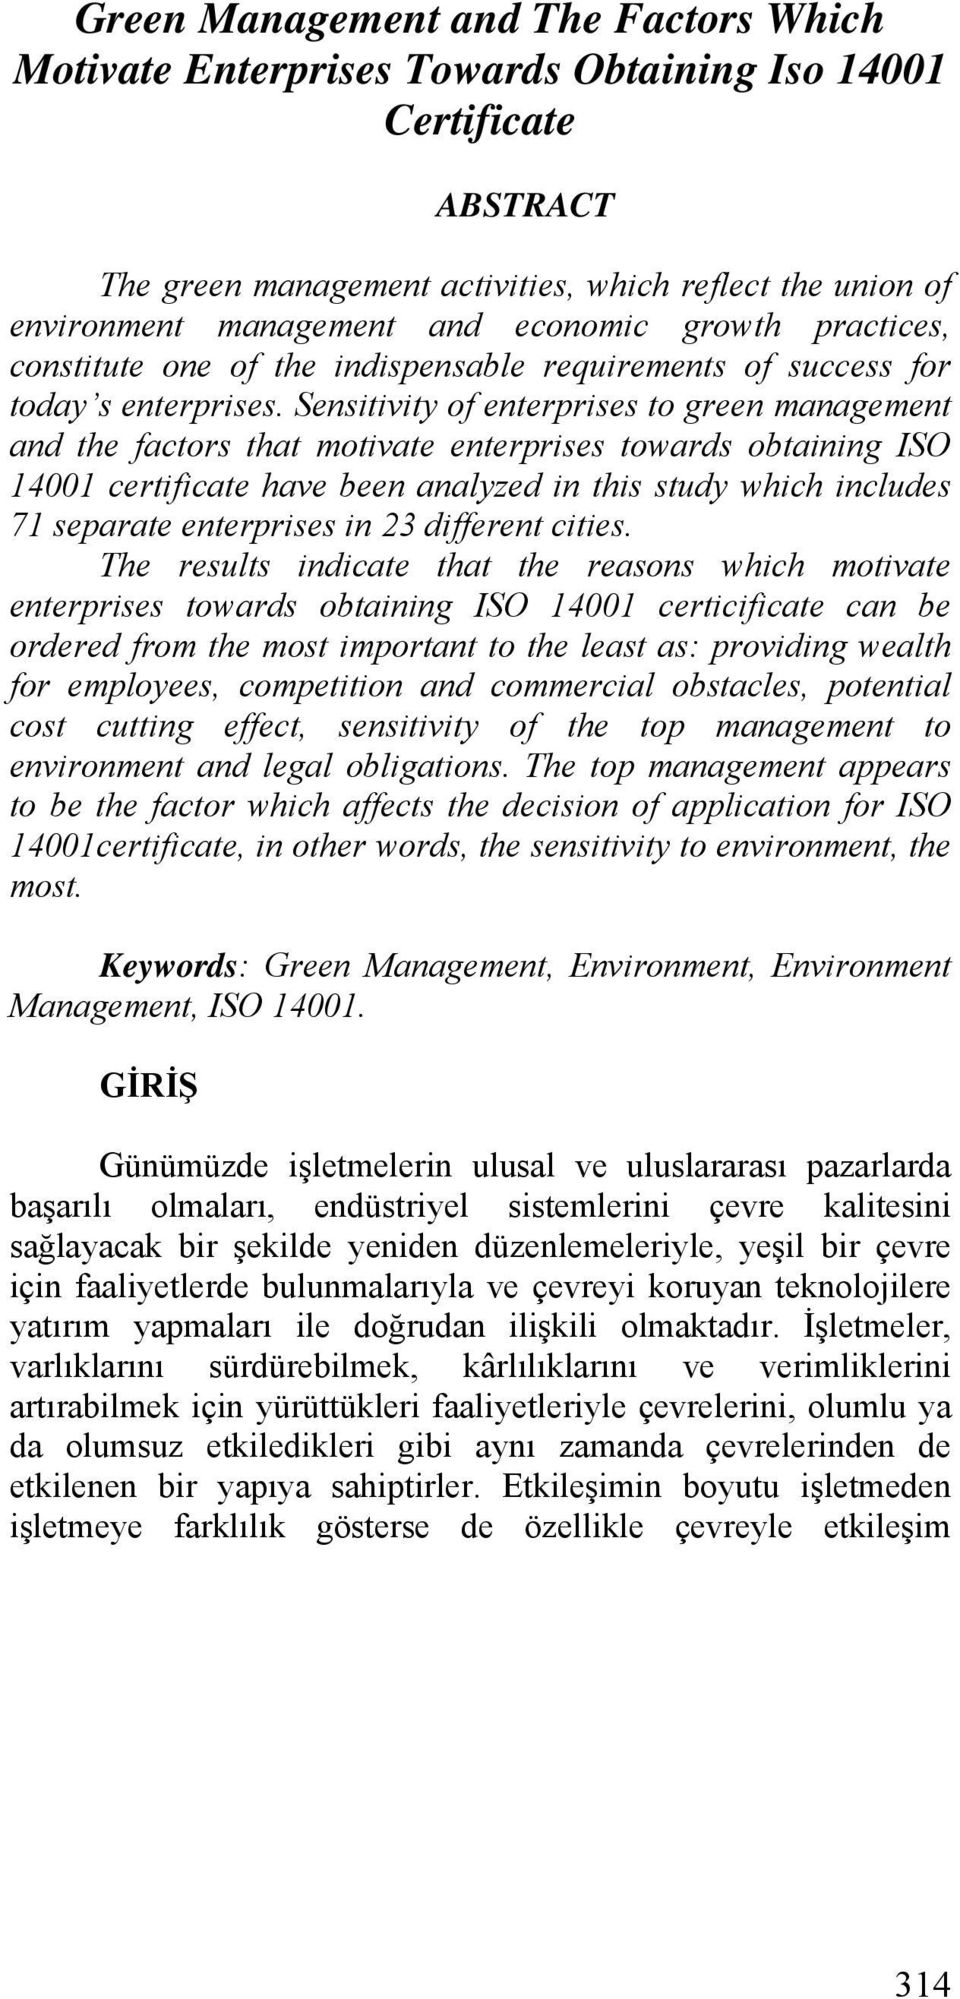 Sensitivity of enterprises to green management and the factors that motivate enterprises towards obtaining ISO 14001 certificate have been analyzed in this study which includes 71 separate